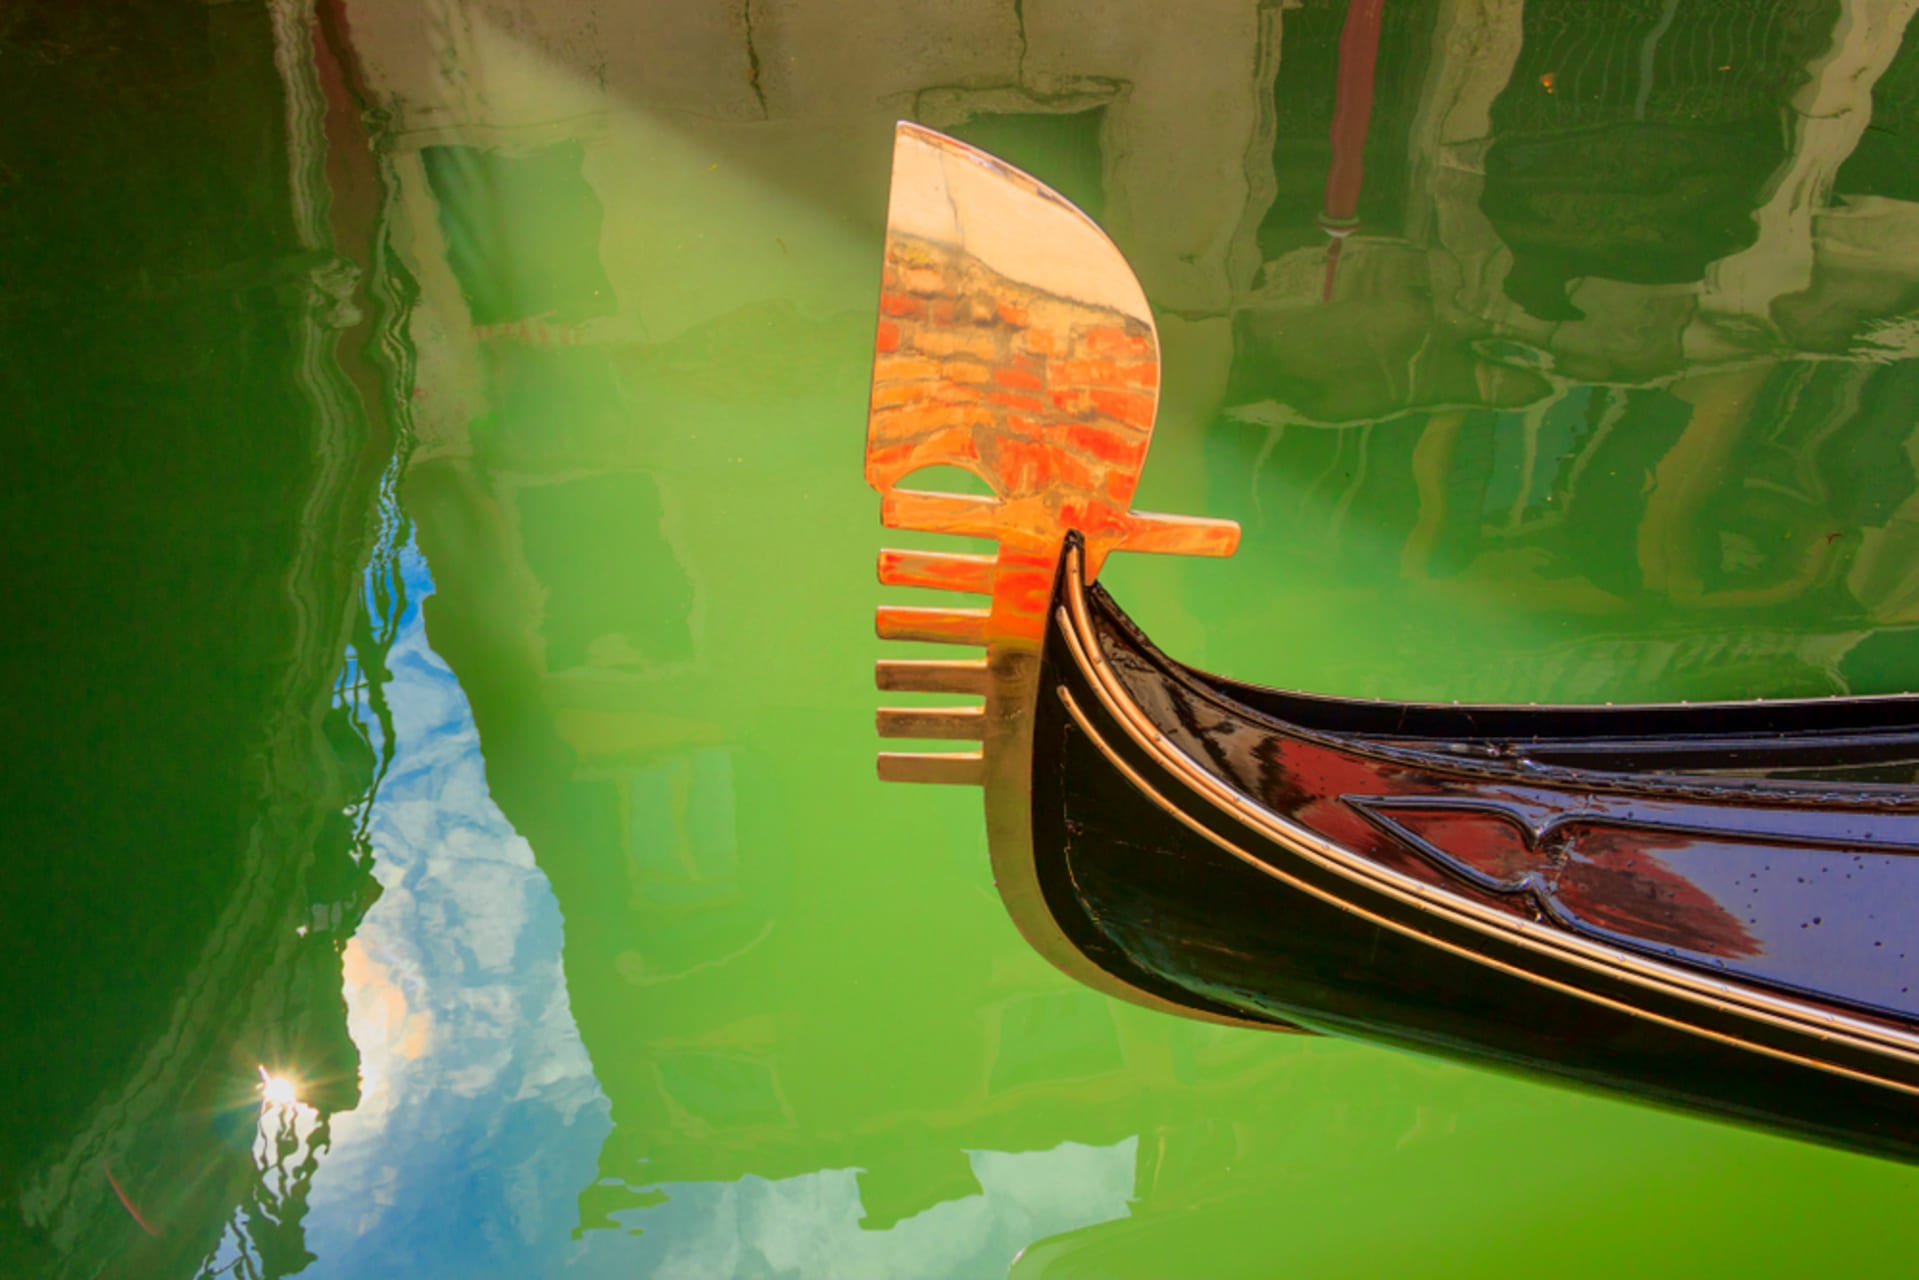 Venice - Gondola ride, Banksy and inner canals, no touristic sites